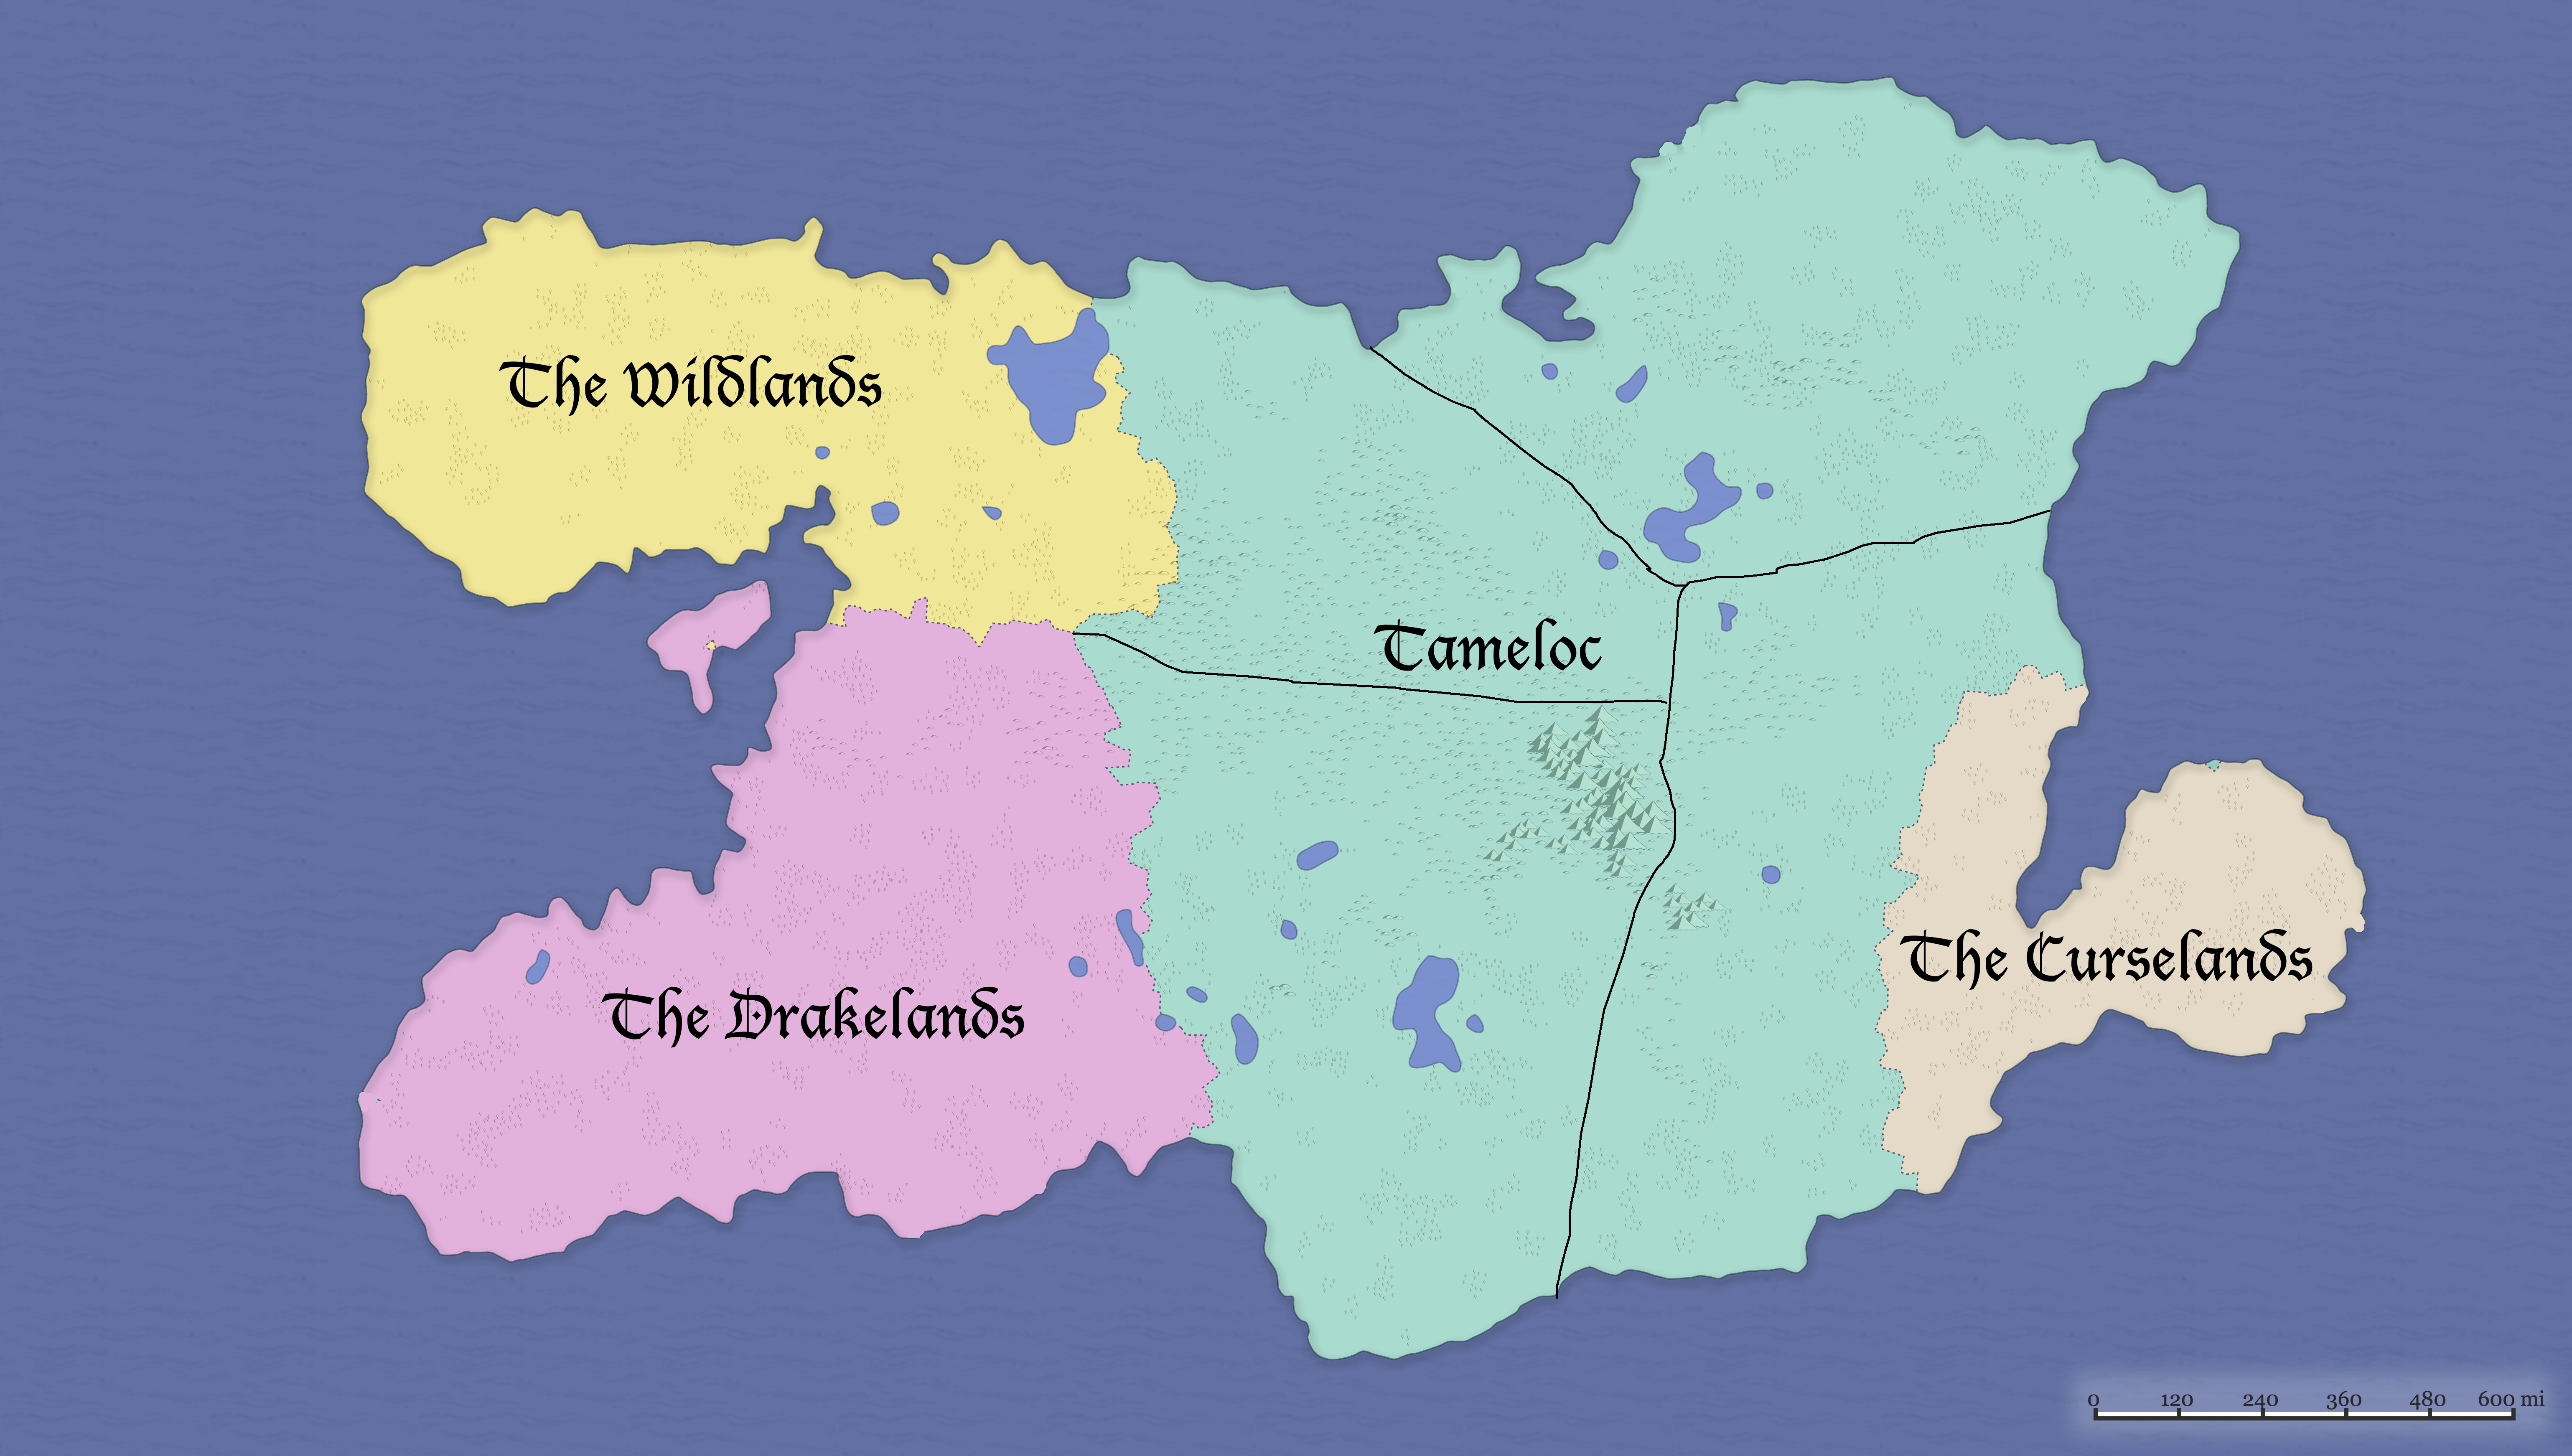 Tameloc_Dividided_by_Houses.png